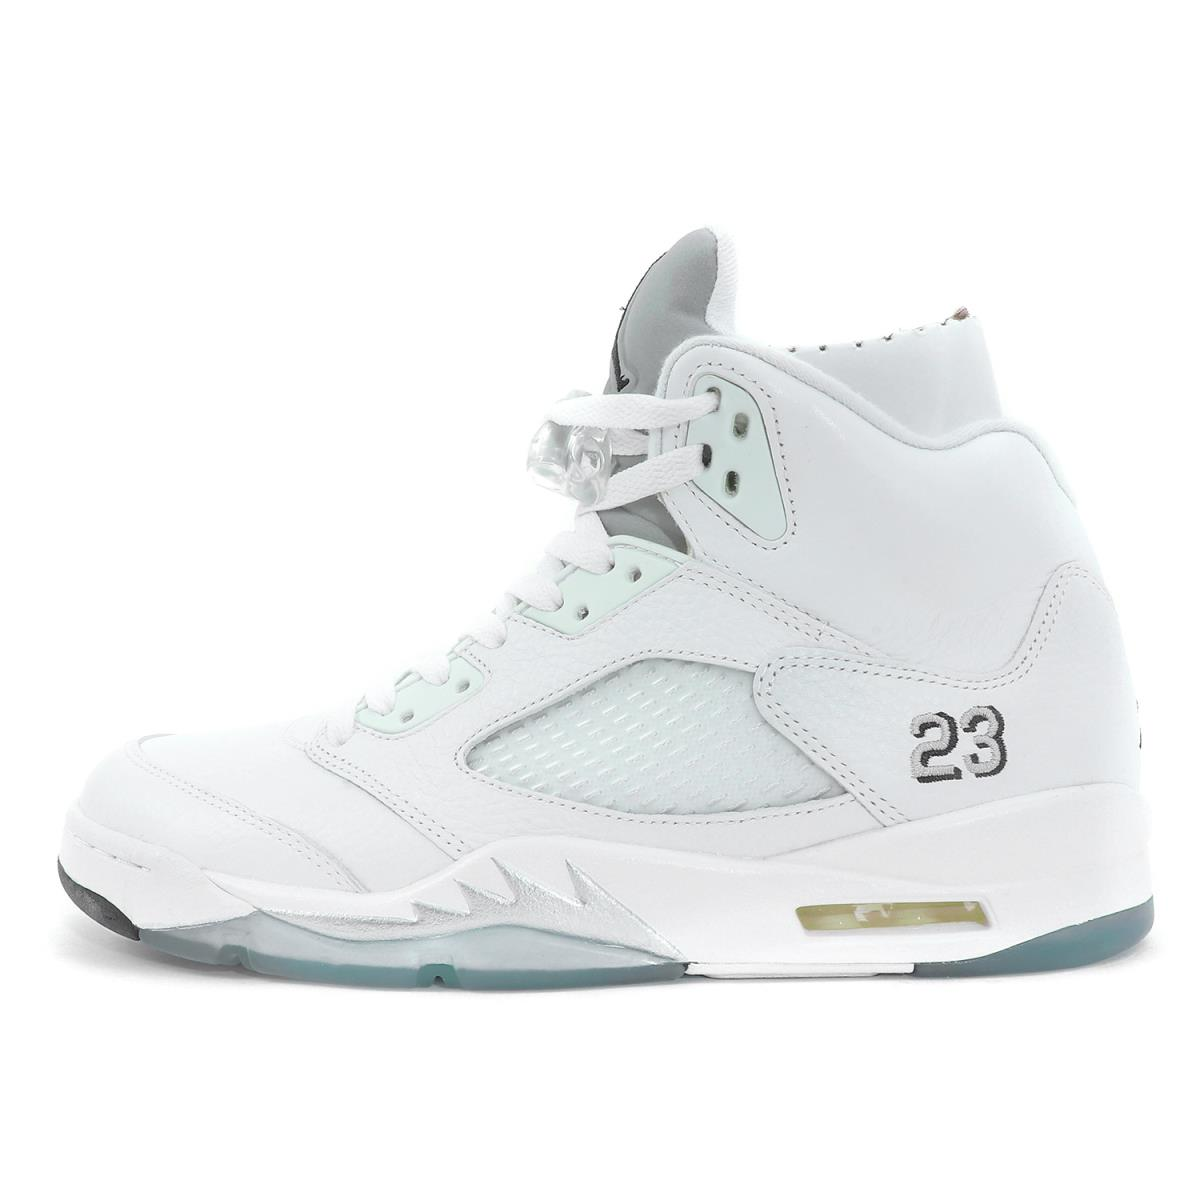 08a21ac5cbd6 ... reduced nike nike air jordan 5 retro metallic silver 136027 130 white x metallic  silver us1028cm